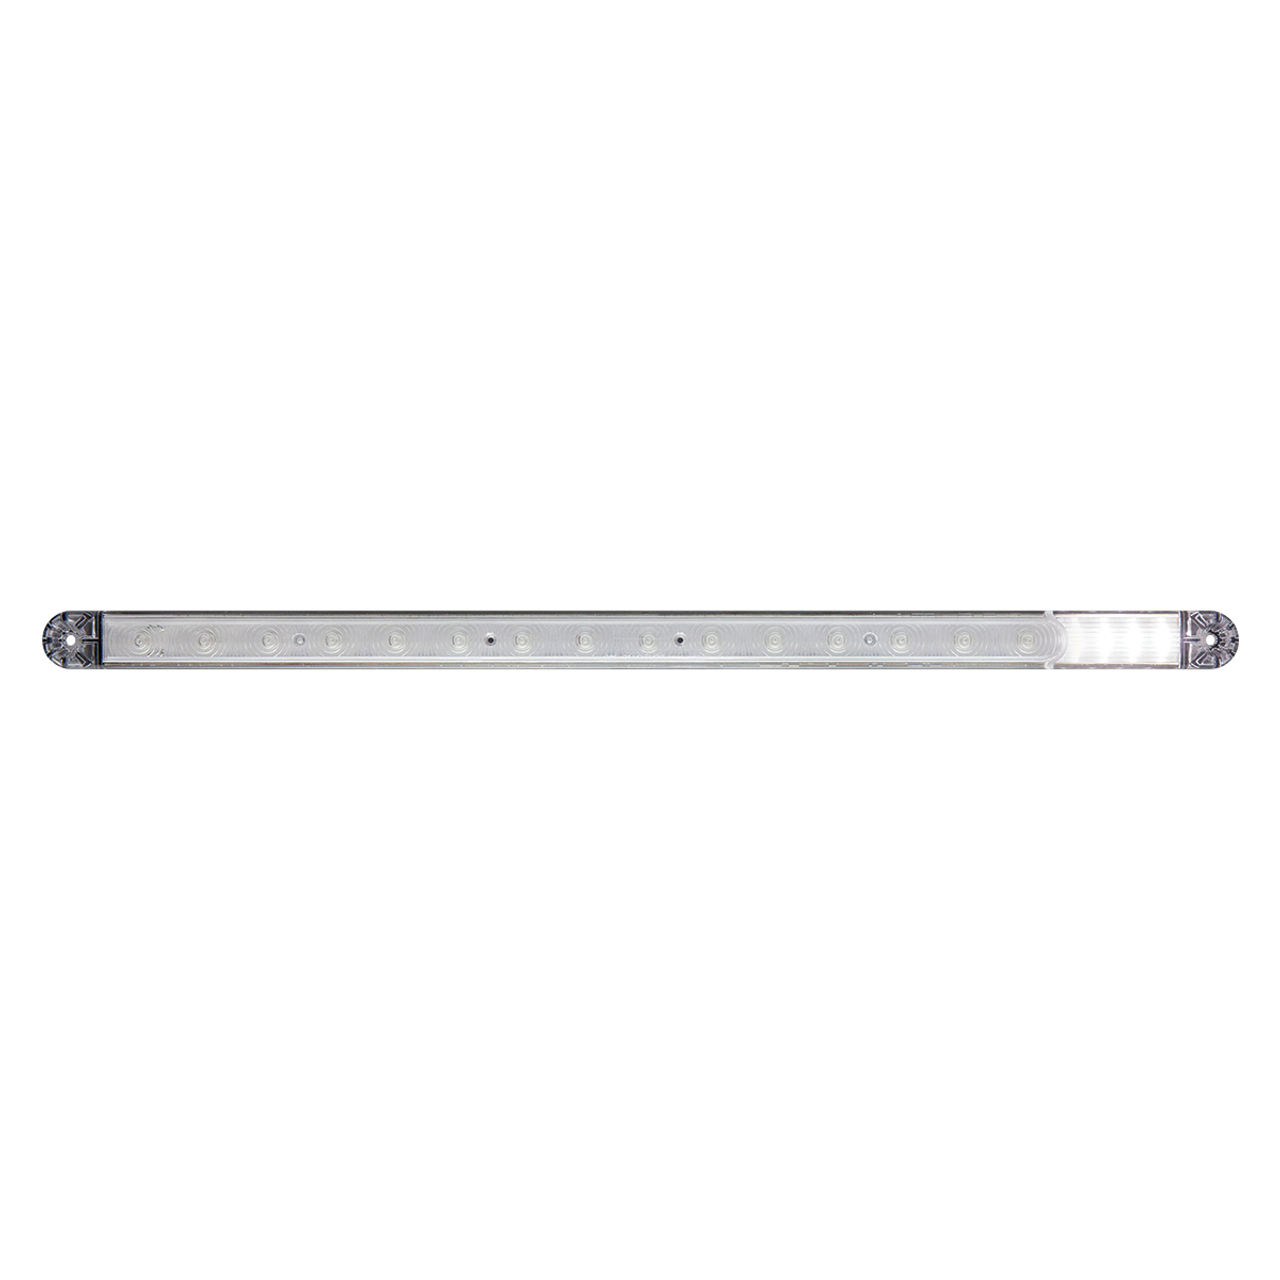 STL264RCBP --- Thinline Sealed LED Stop/Turn/Tail with Clear Back-Up Light